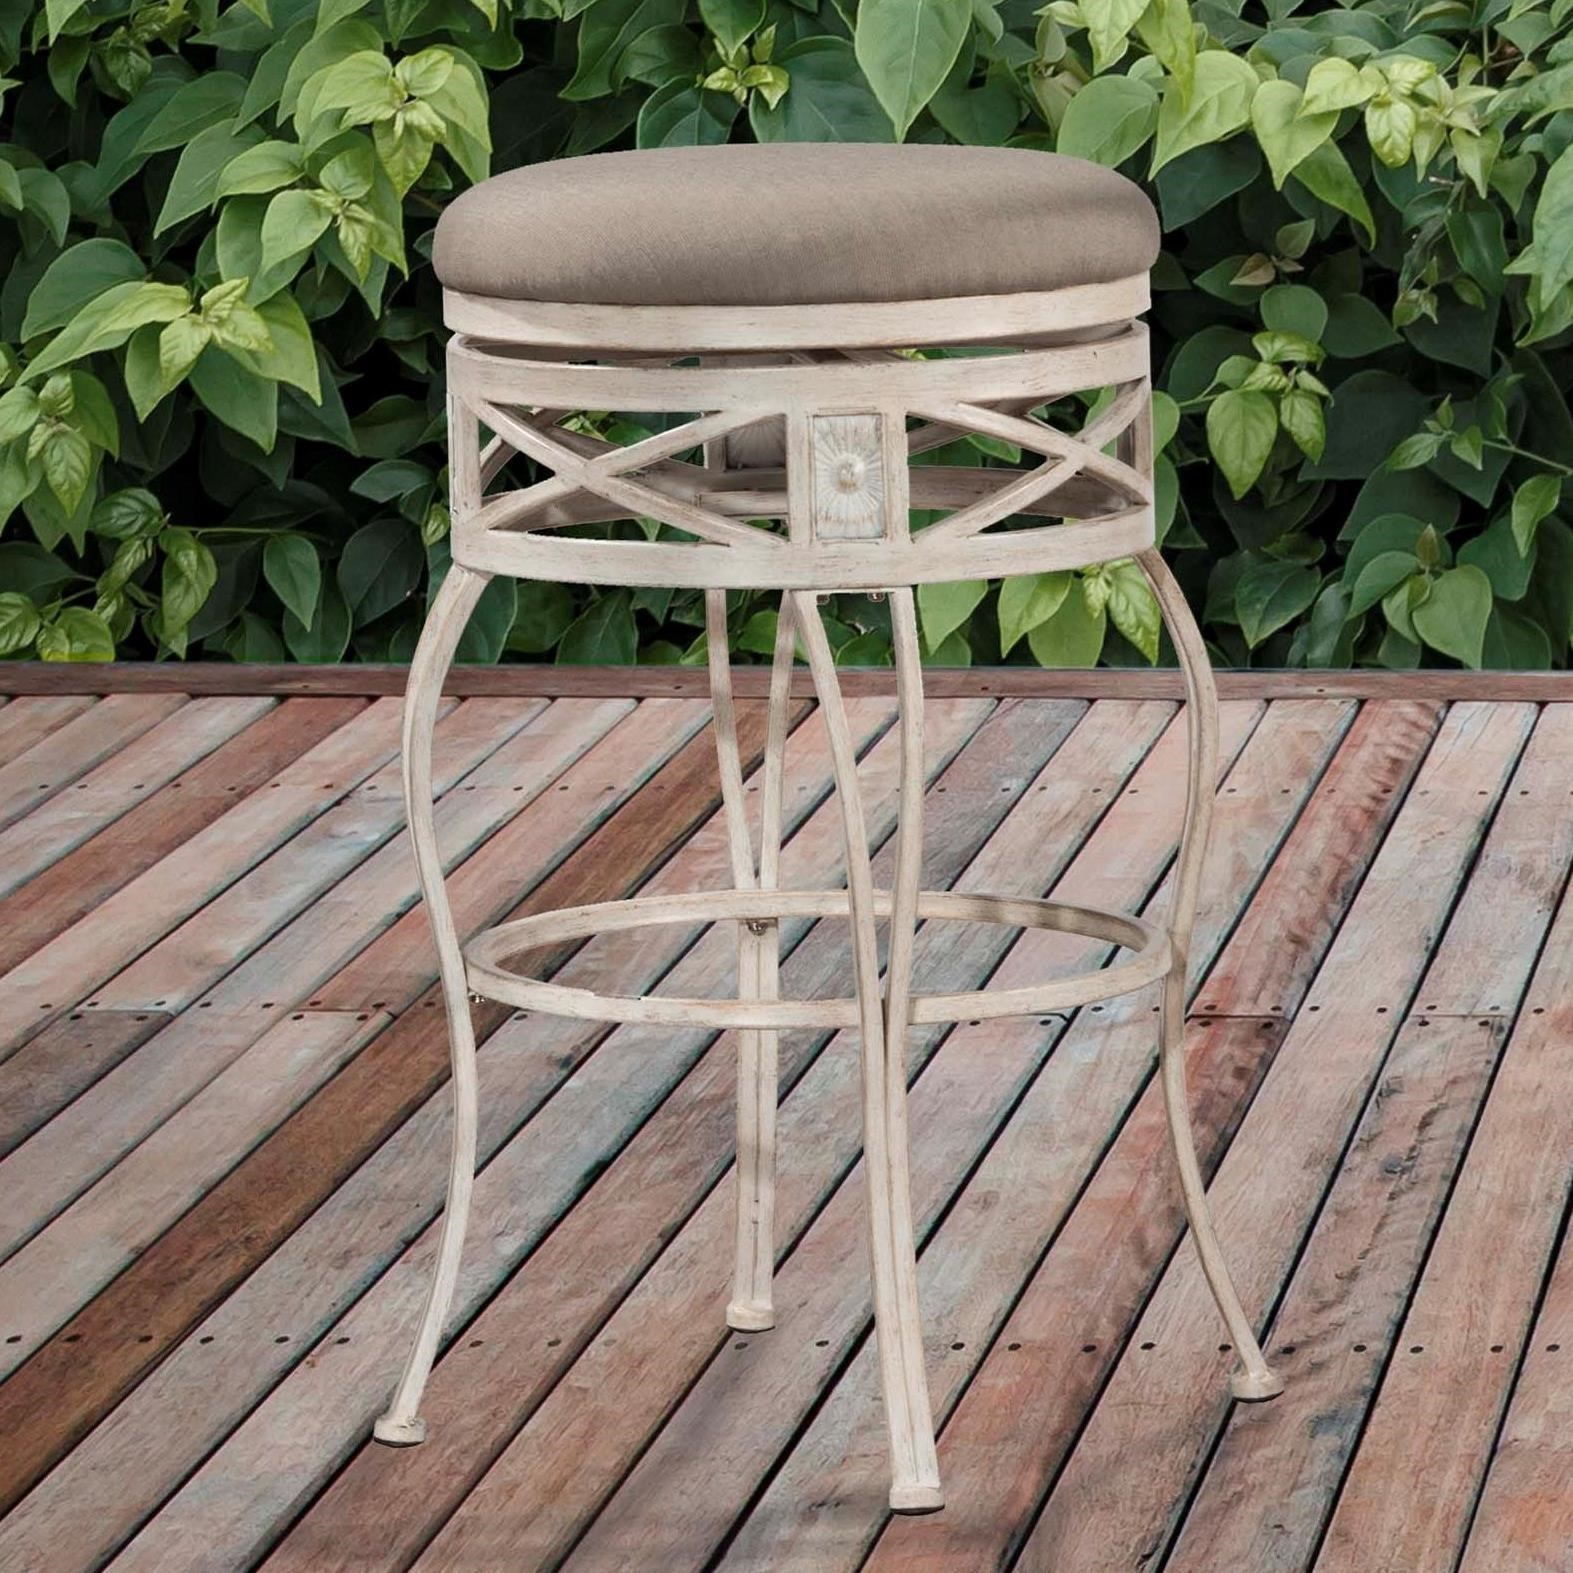 Hillsdale Indoor/Outdoor Stools Swivel Bar Stool - Item Number: 6298-830